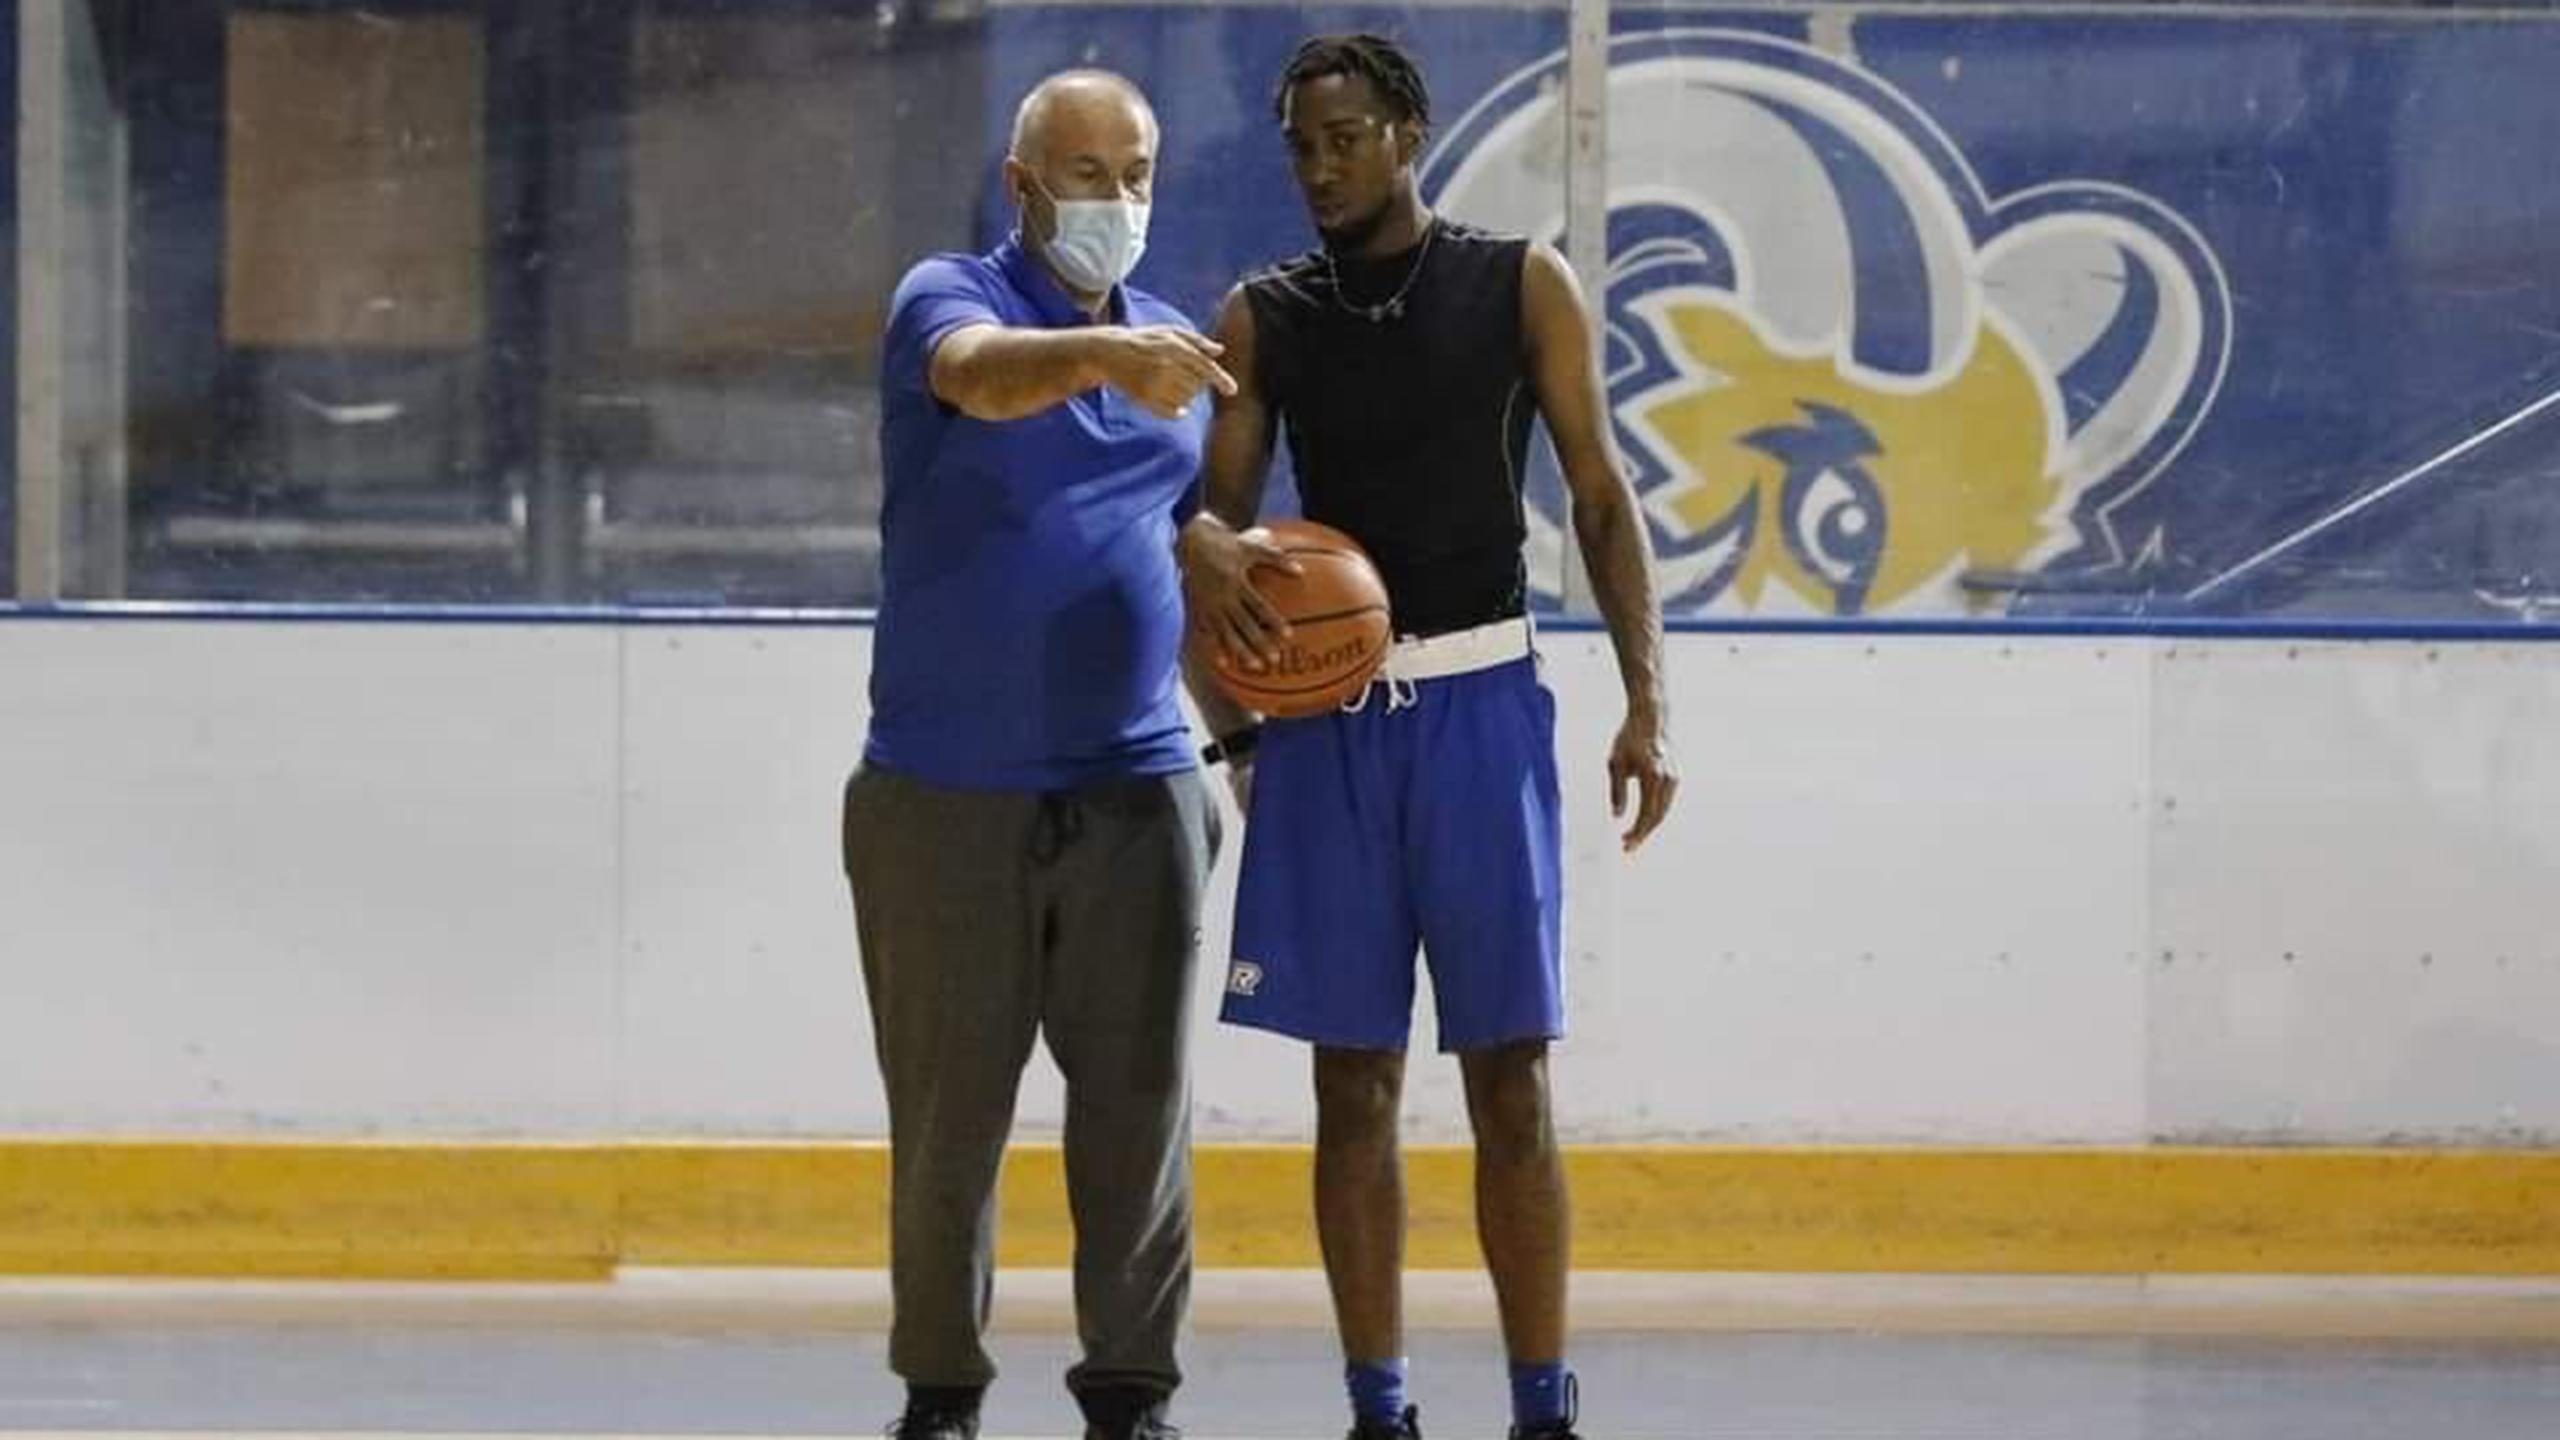 Photo of a coach and an athlete holding a basketball.